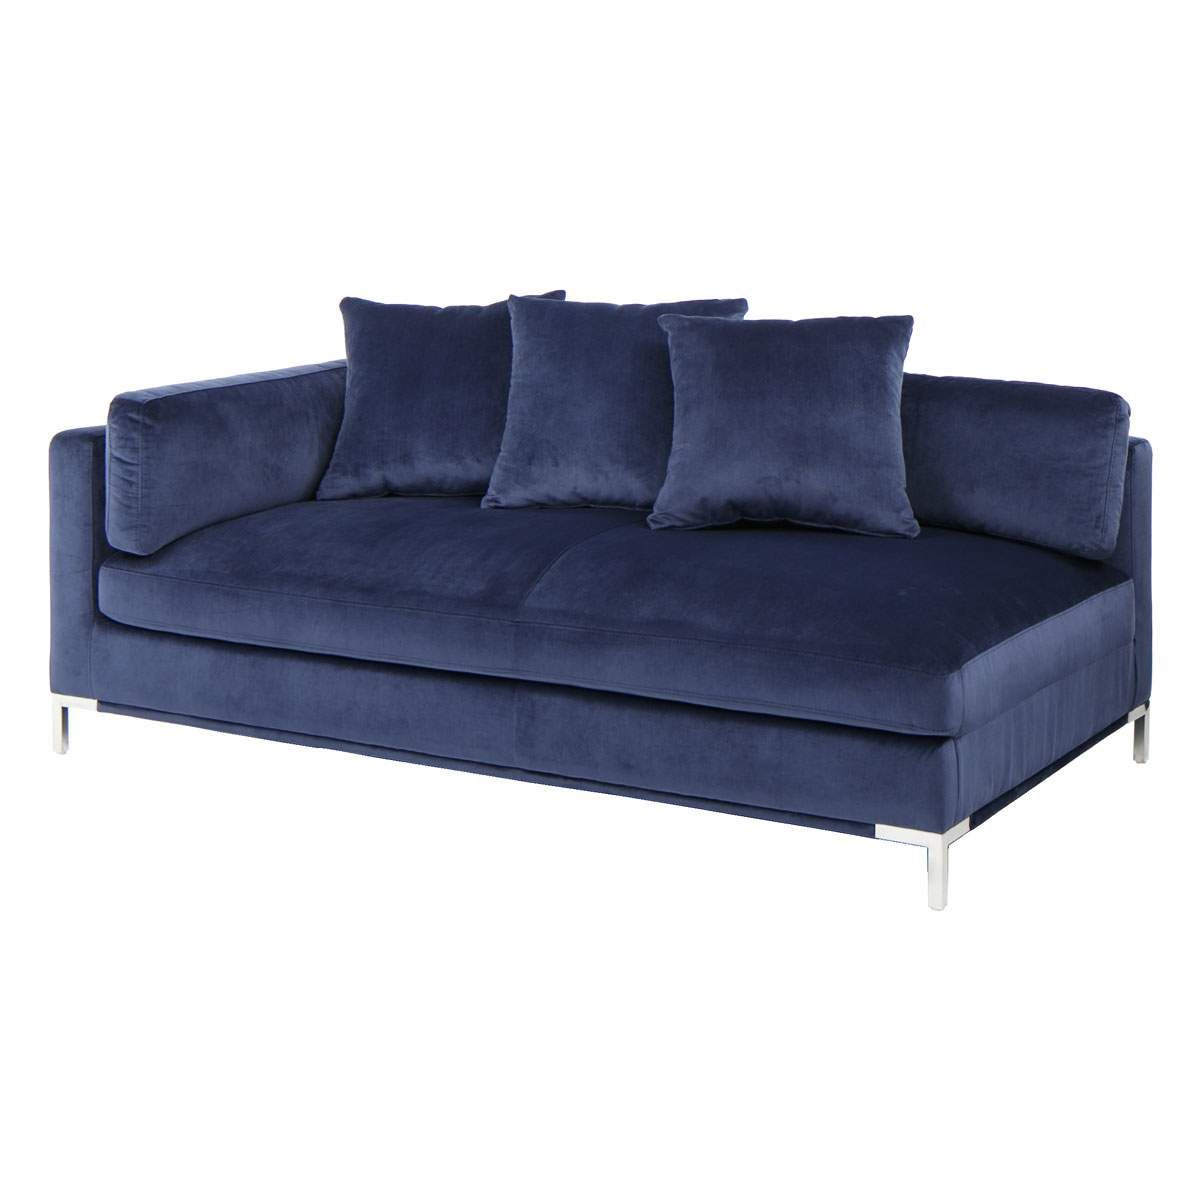 Prime Belair Laf Chaise In Blue Jeromes Furniture In 2019 Gmtry Best Dining Table And Chair Ideas Images Gmtryco